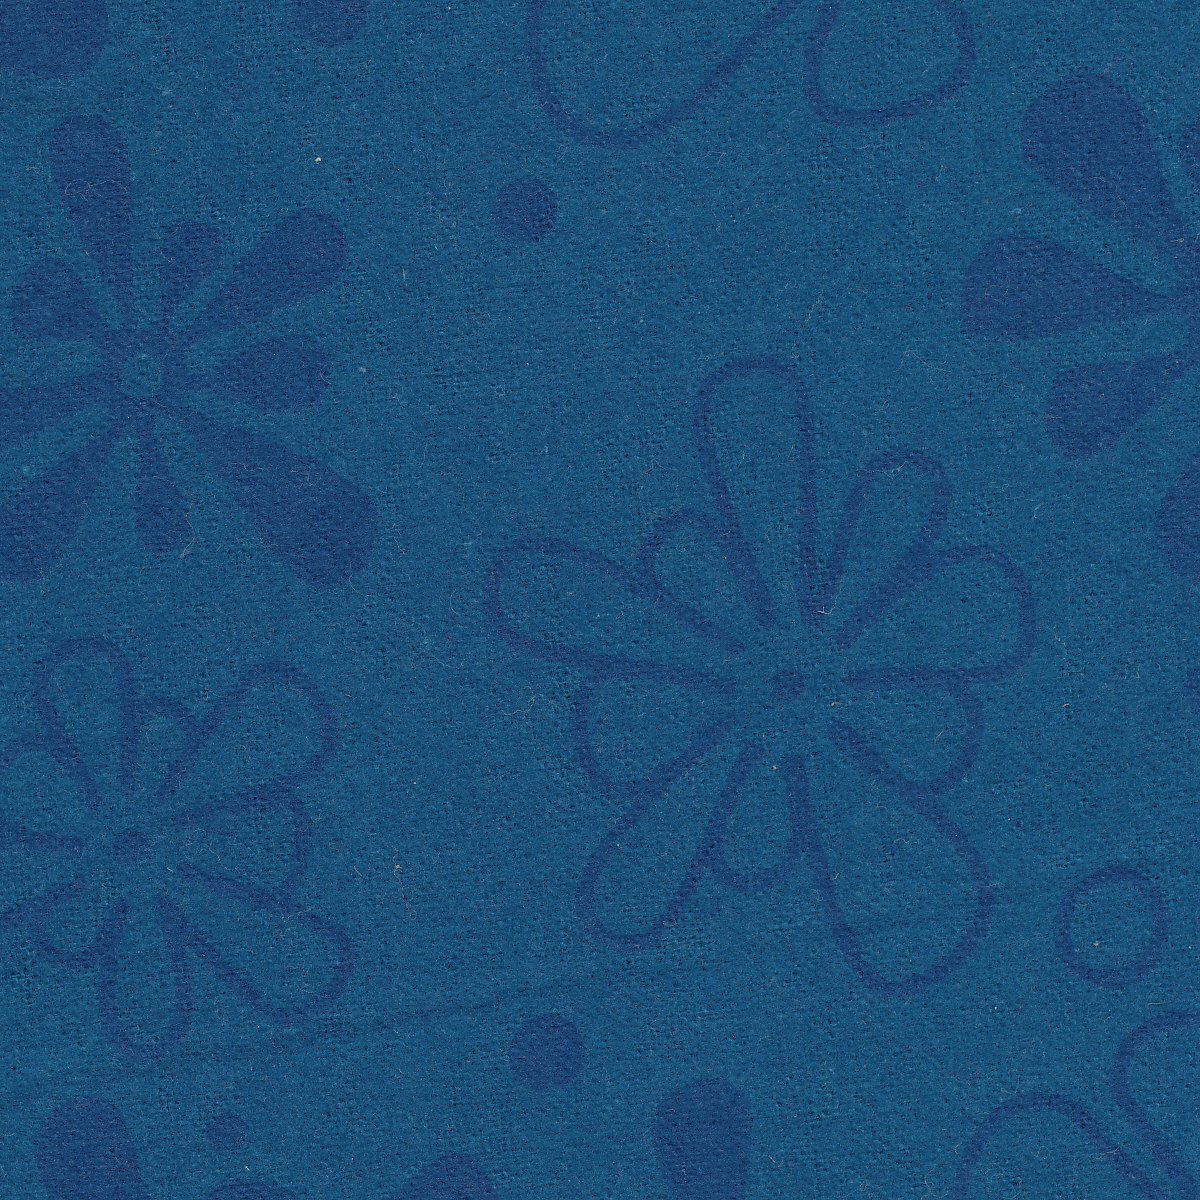 Quilt Backing Flannel 110 Wide - 9032-6